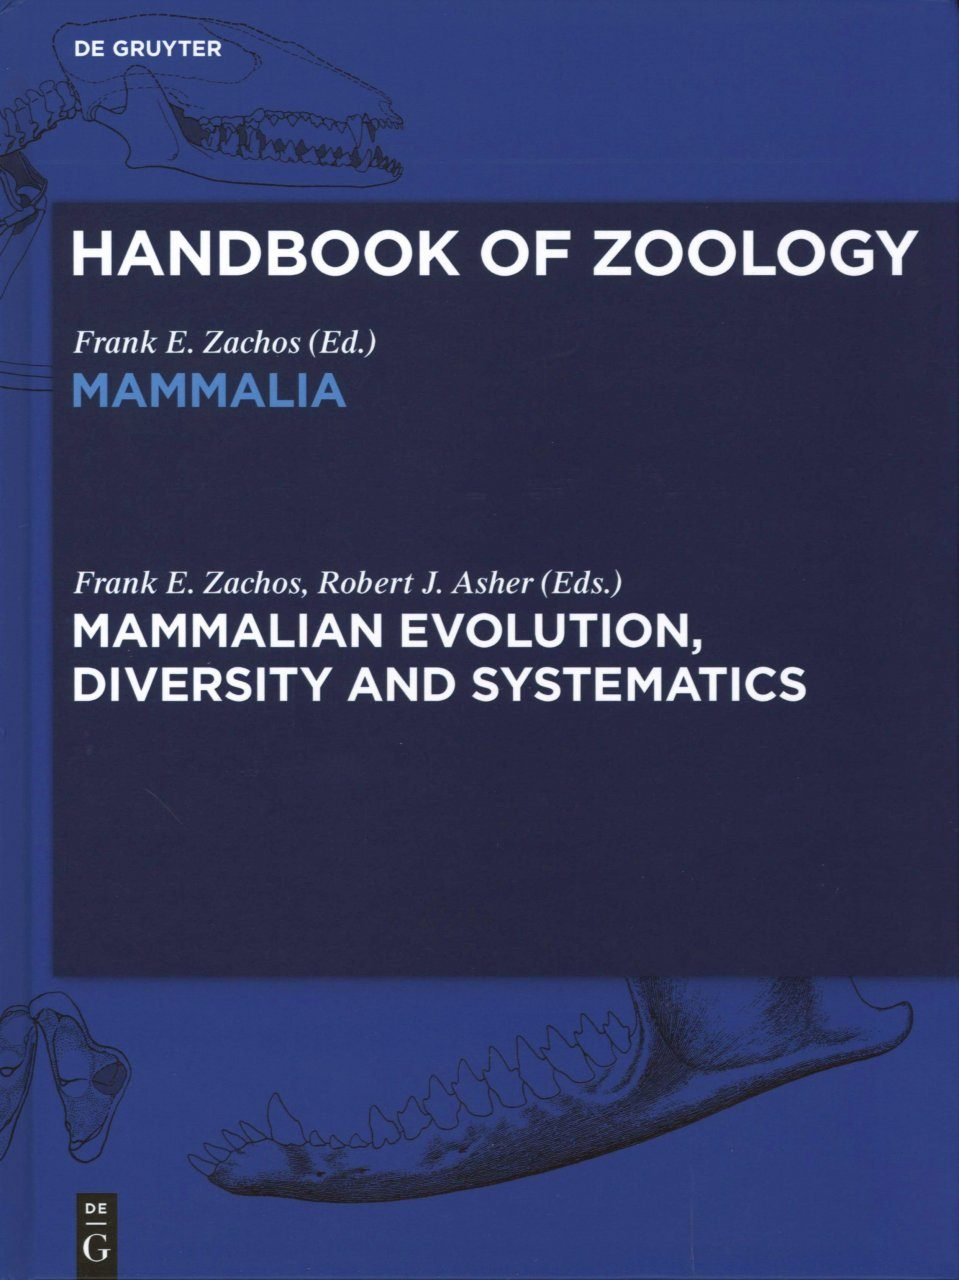 Handbook of Zoology: Mammalian Evolution, Diversity and Systematics